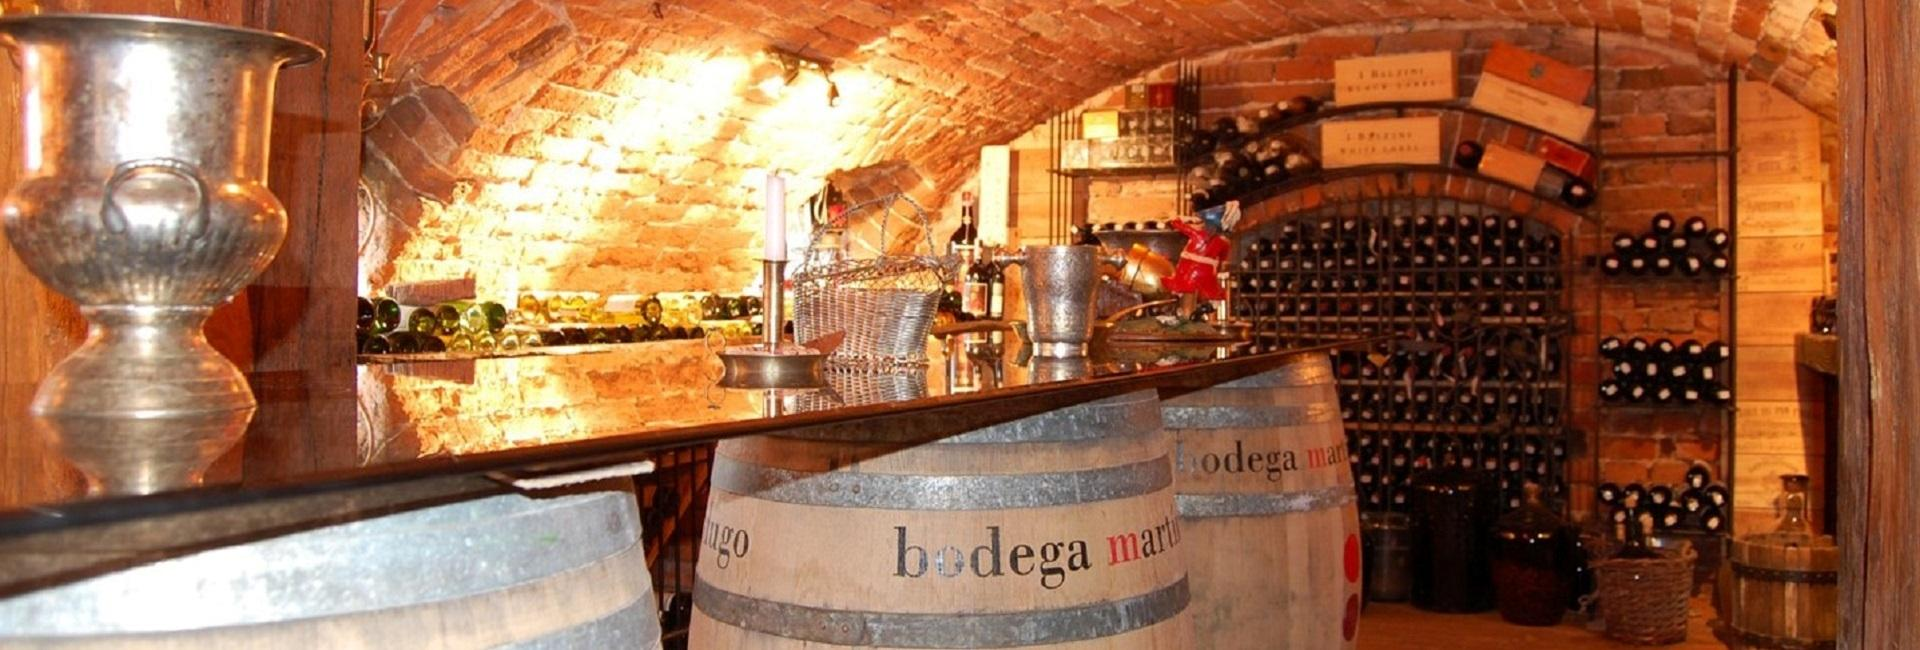 Wine cellar at Chotynia Manor House in in Sobolew